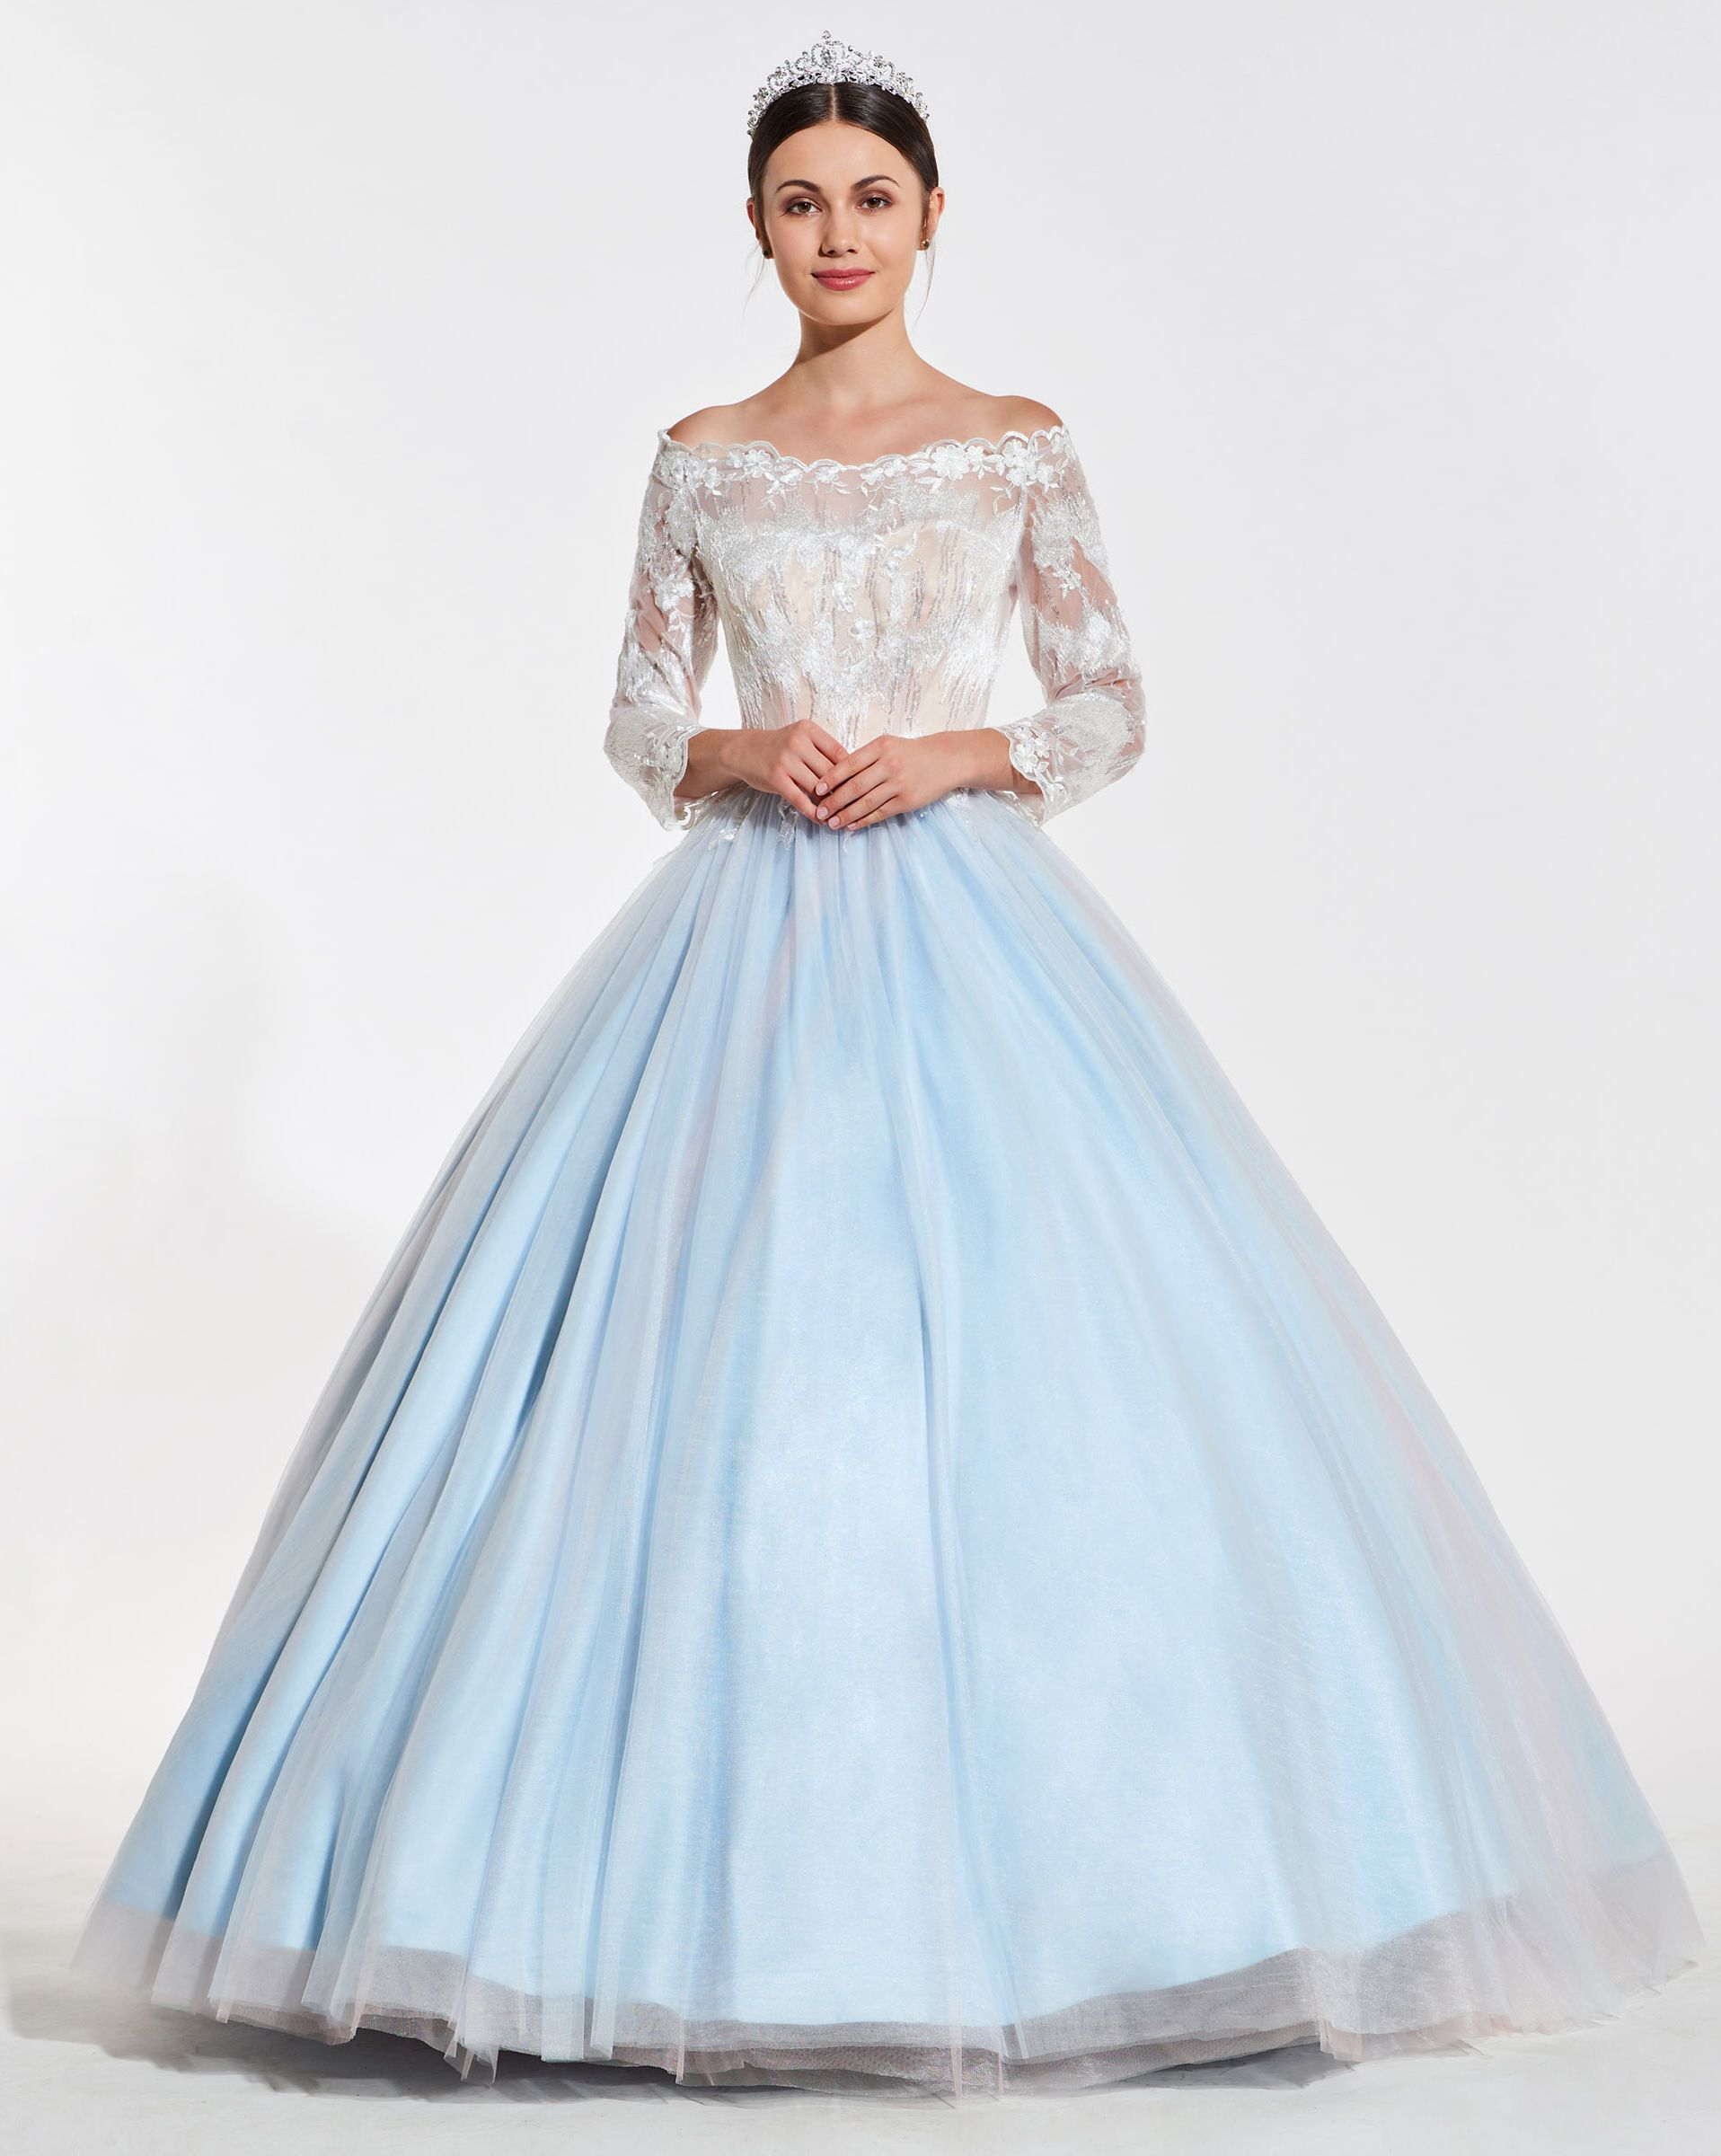 Offtheshoulder beaded lace quinceanera dress occasion dresses